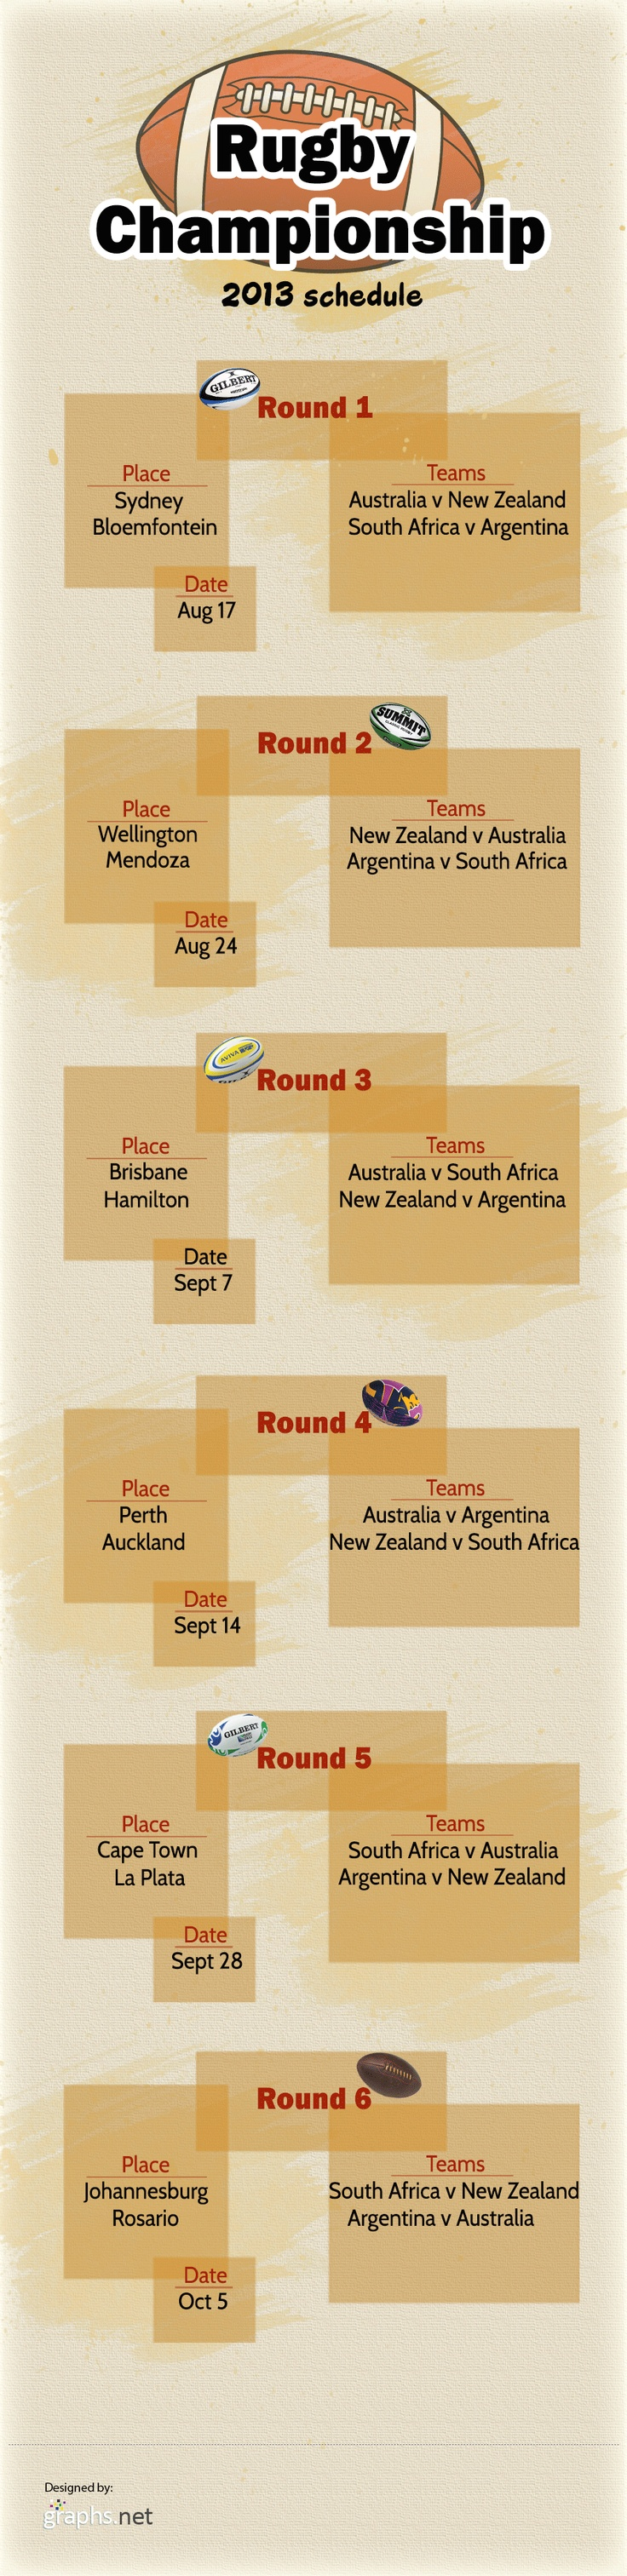 rugby championship 2013 schedule #rugby #championship #2013 #schedule #Sports #Infographics